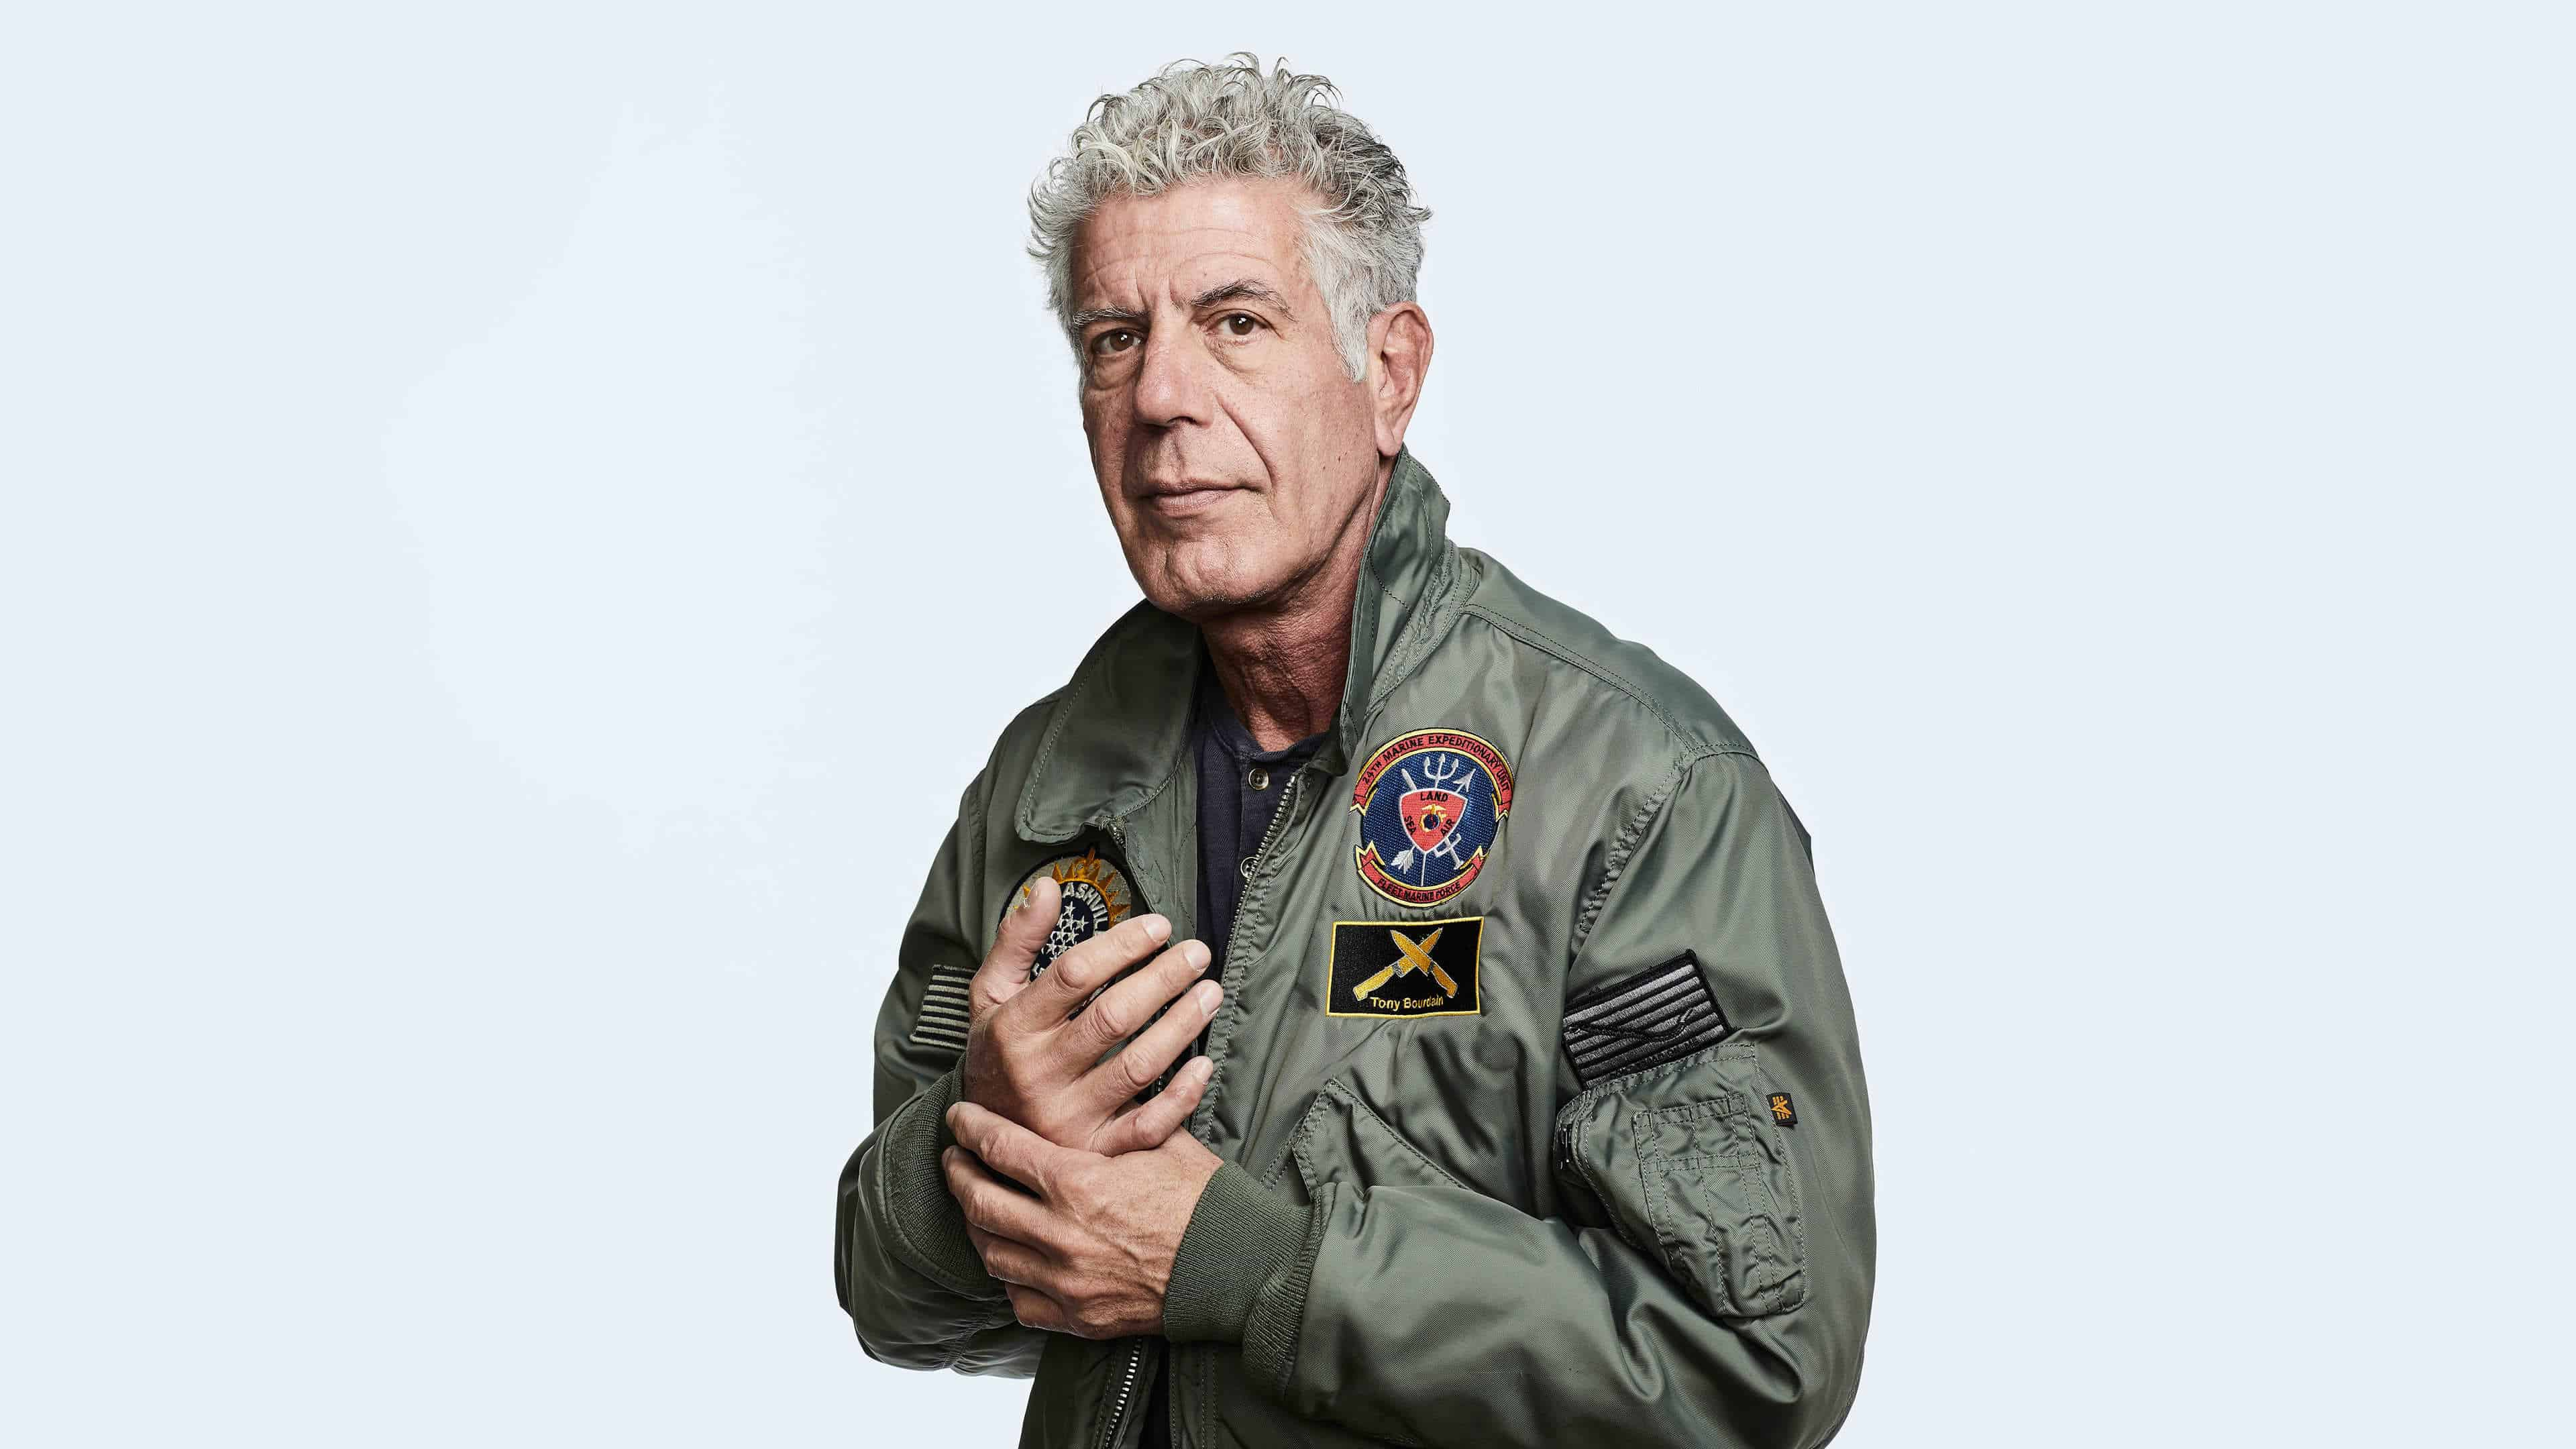 anthony bourdain uhd 4k wallpaper